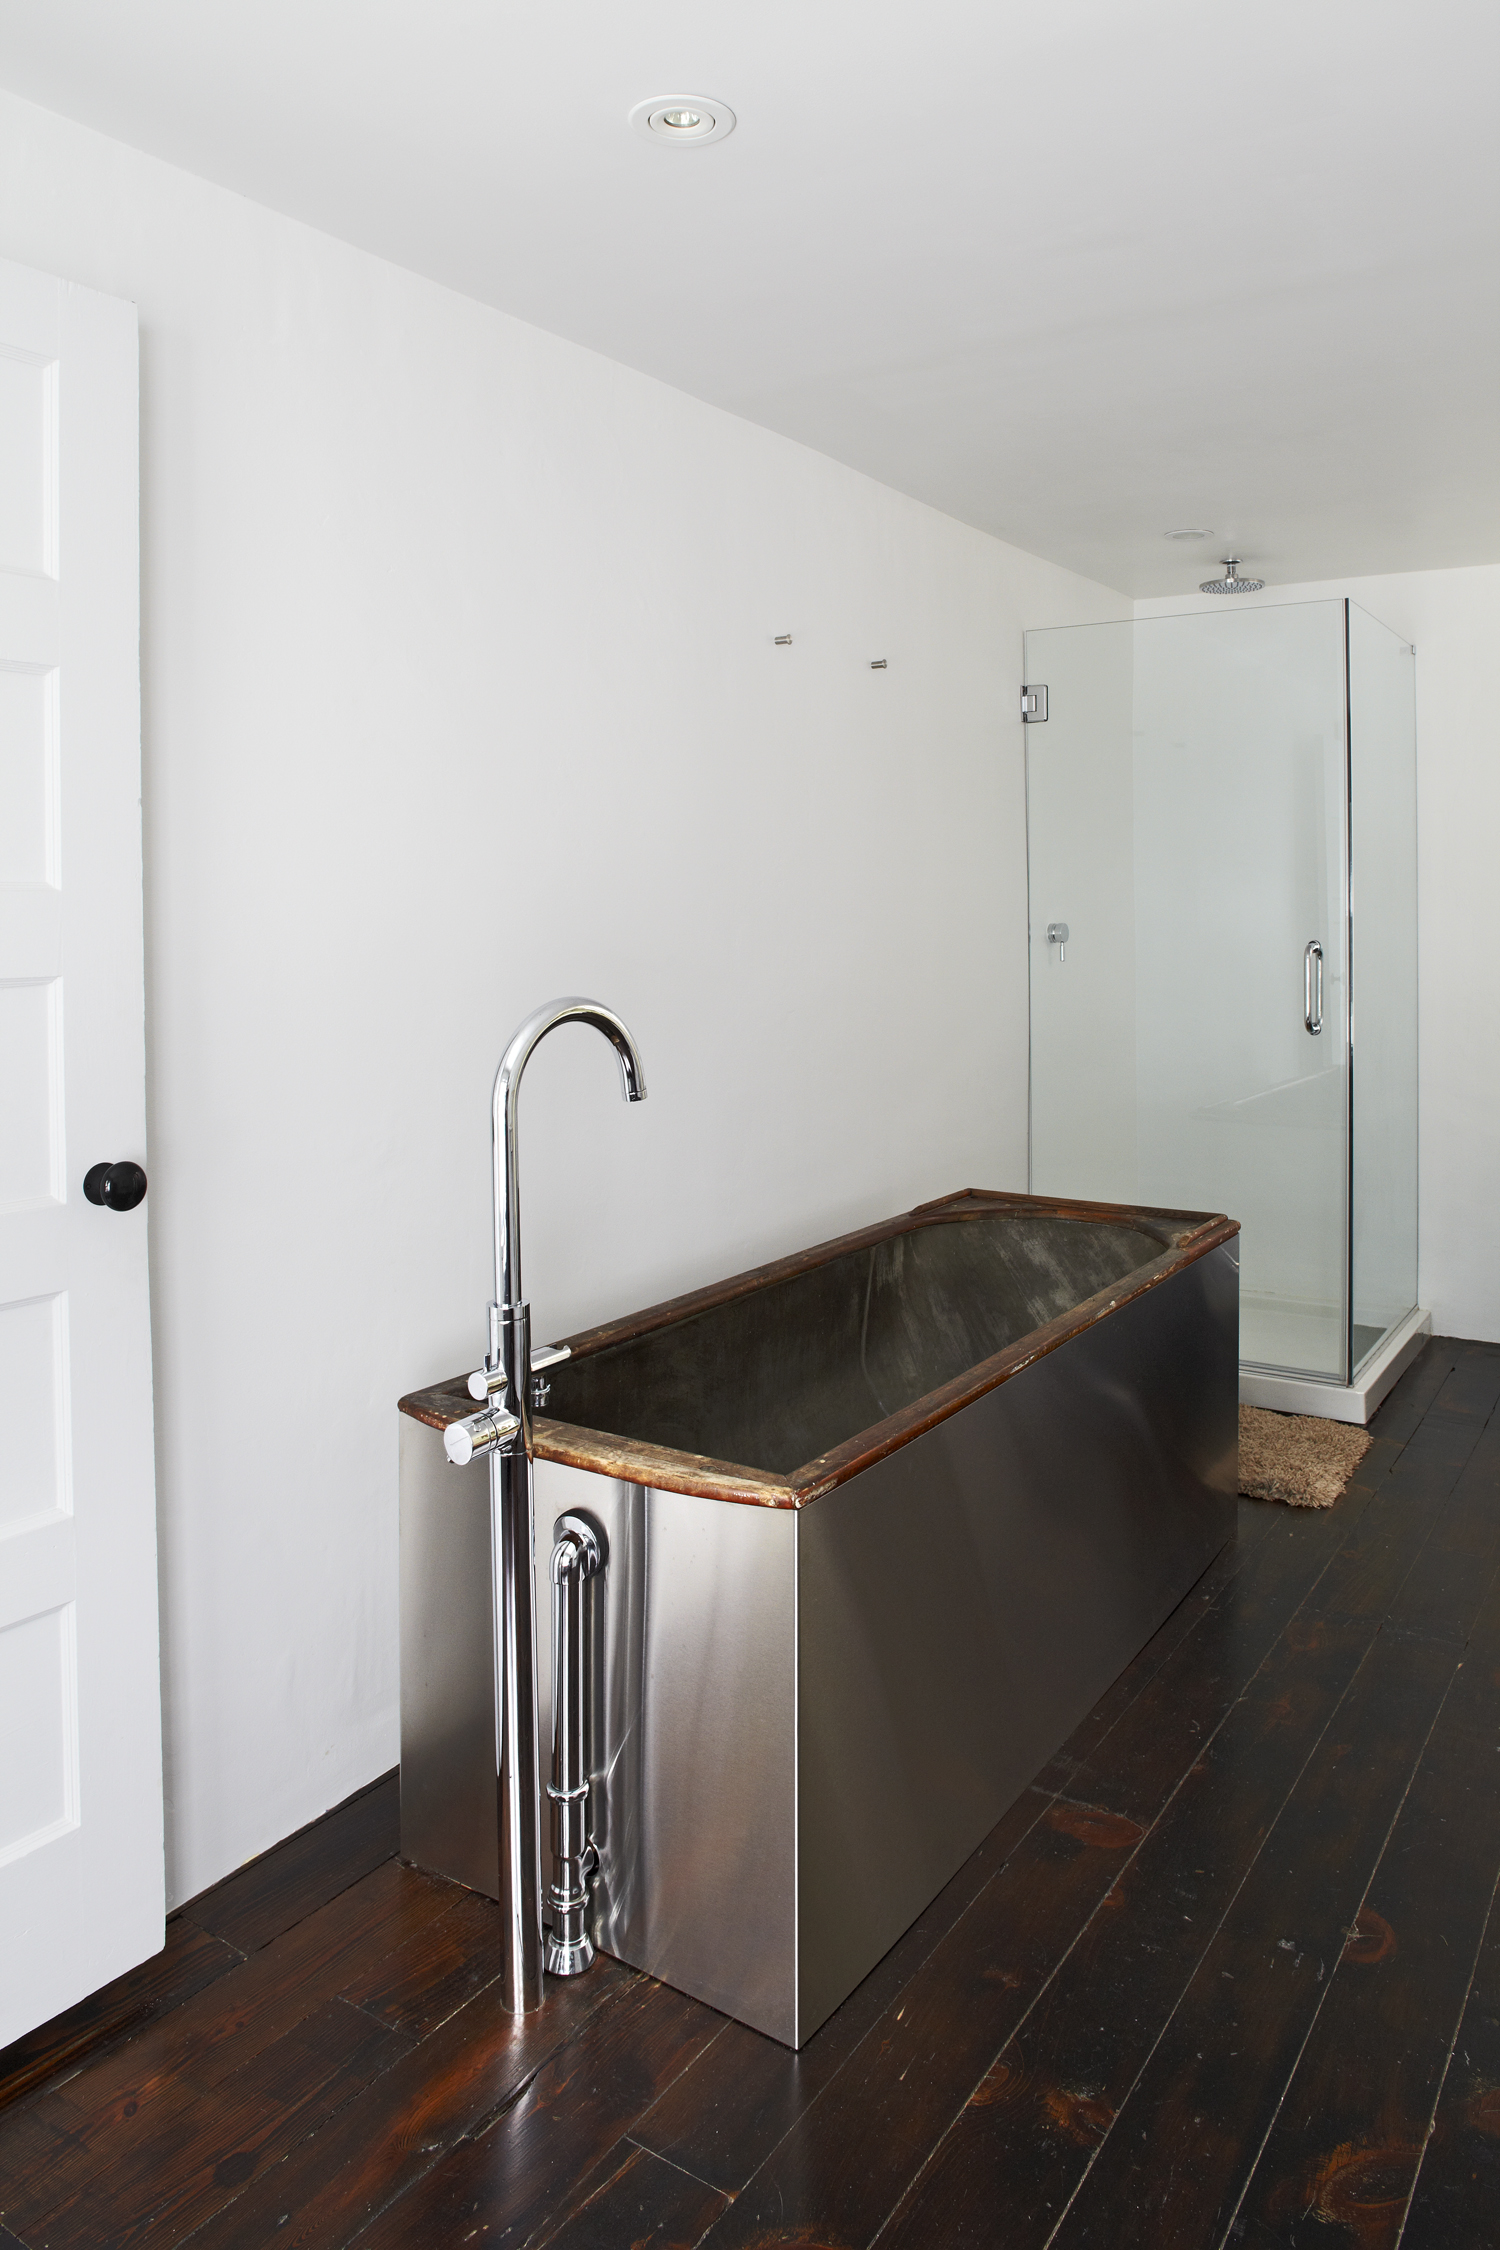 Antique wood and copper bathtub, wrapped in stainless steel, in the Floating Farmhouse Catskills vacation rental in upstate New York.